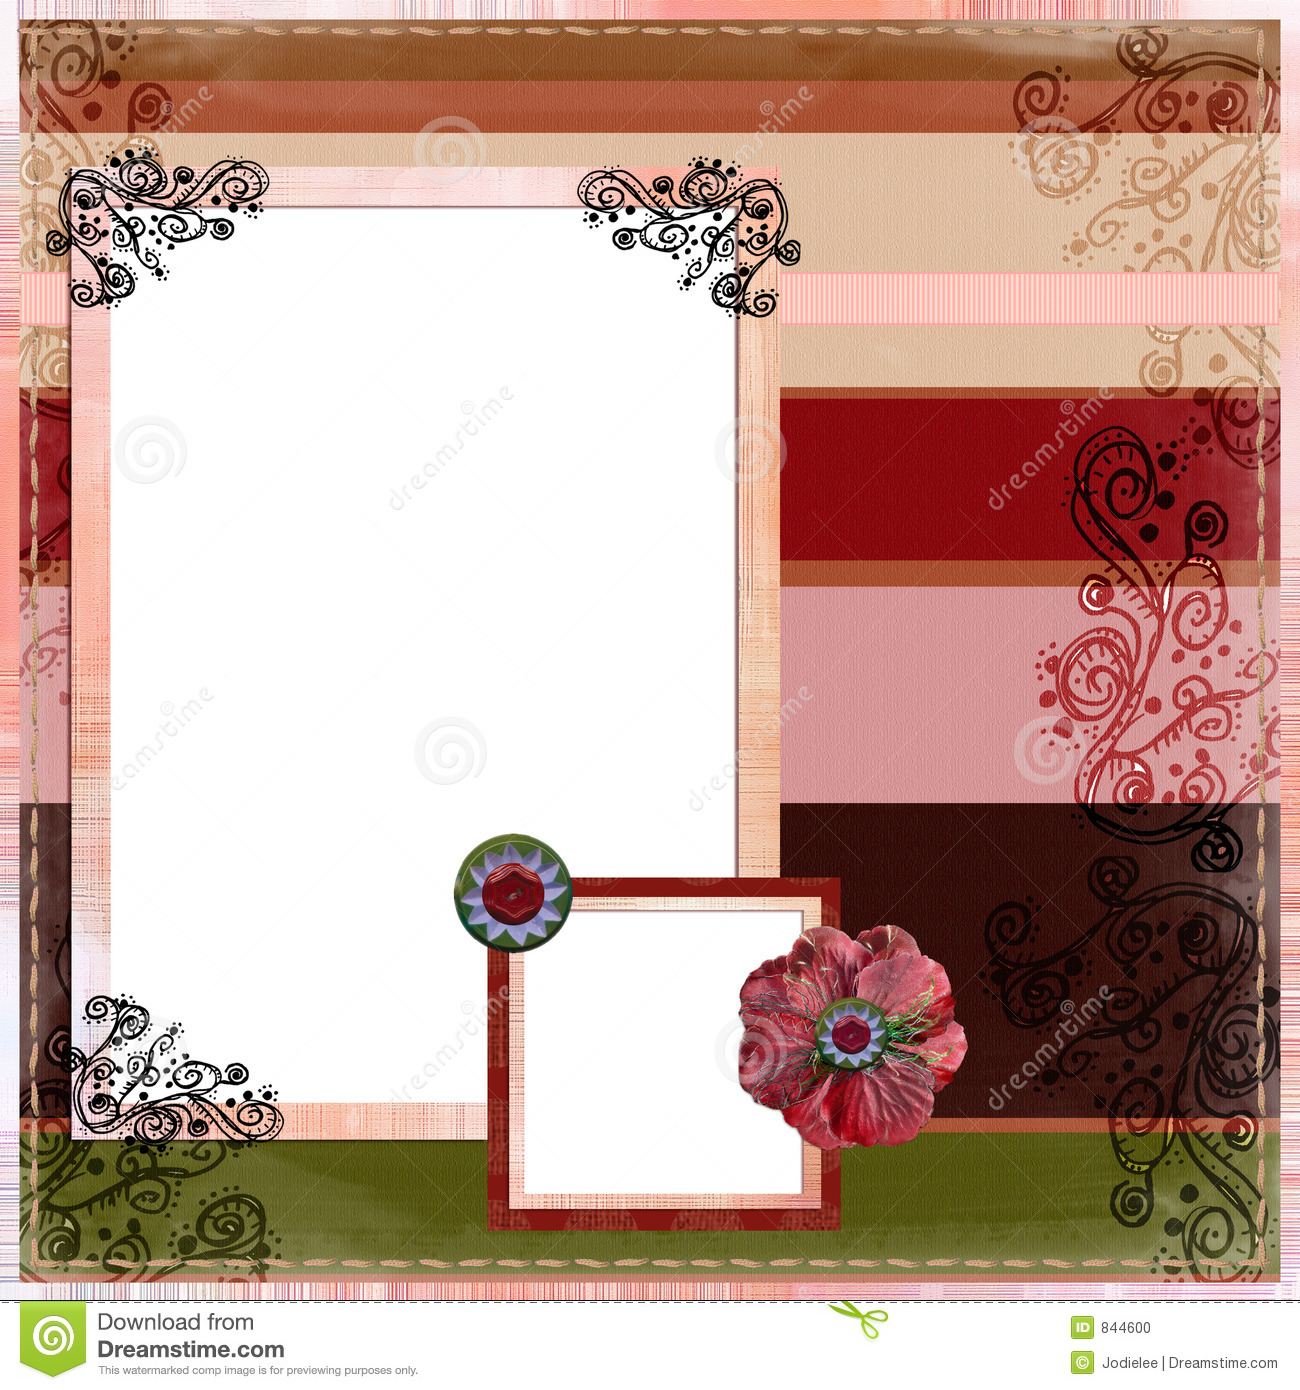 How to scrapbook 8x8 layouts - Bohemian Gypsy Scrapbook Album Page Layout